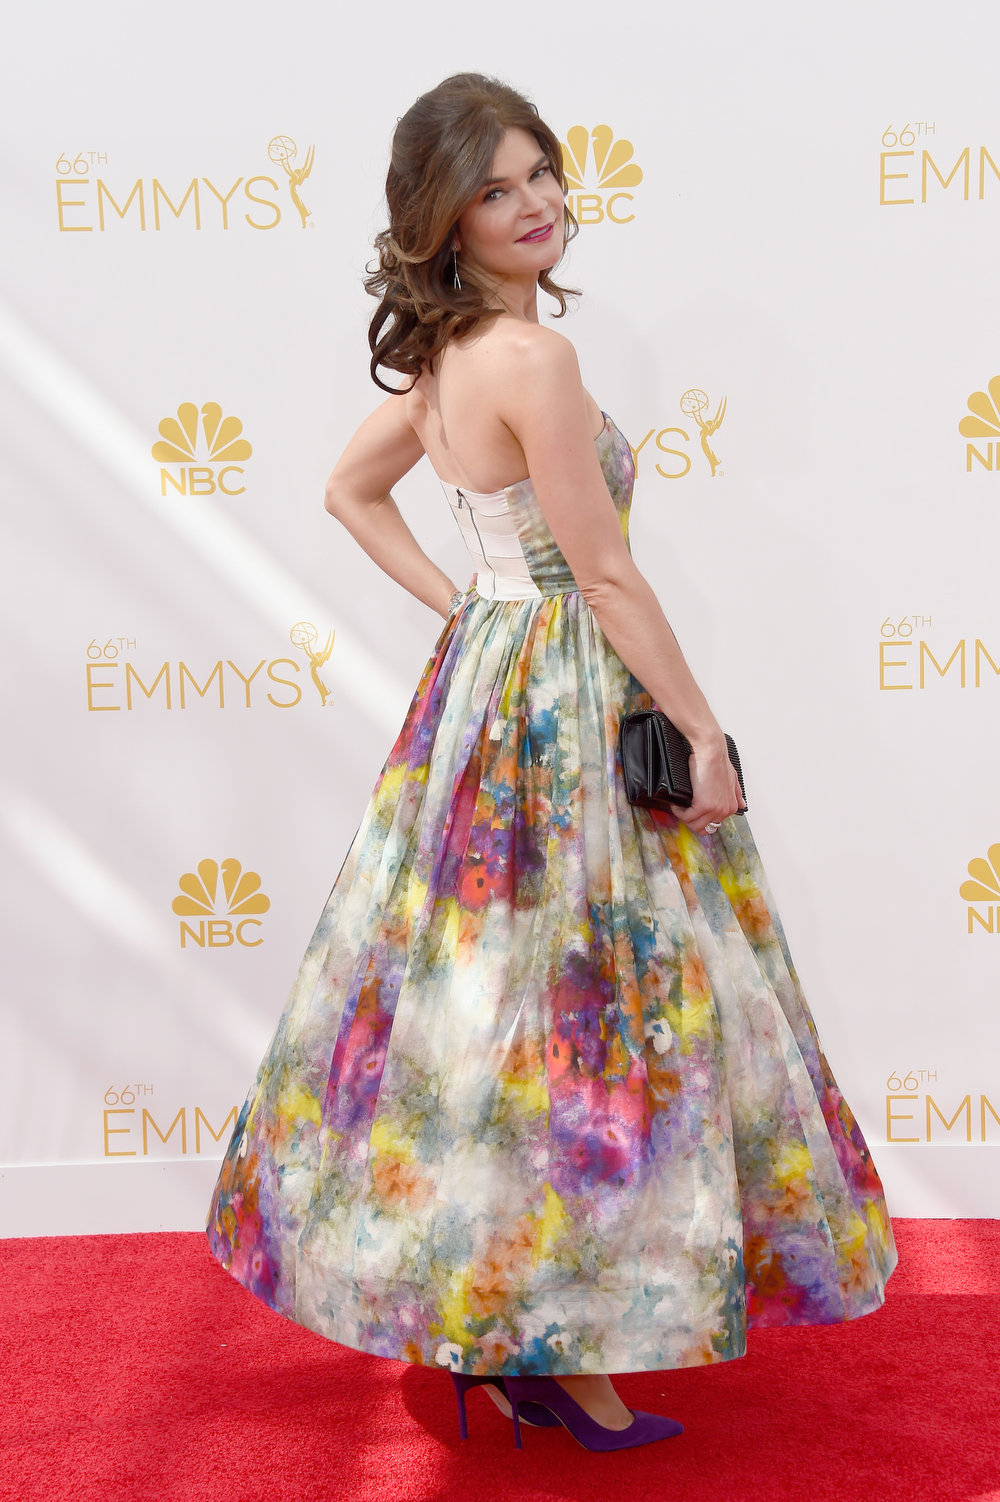 . Actress Betsy Brandt attends the 66th Annual Primetime Emmy Awards held at Nokia Theatre L.A. Live on August 25, 2014 in Los Angeles, California.  (Photo by Frazer Harrison/Getty Images)